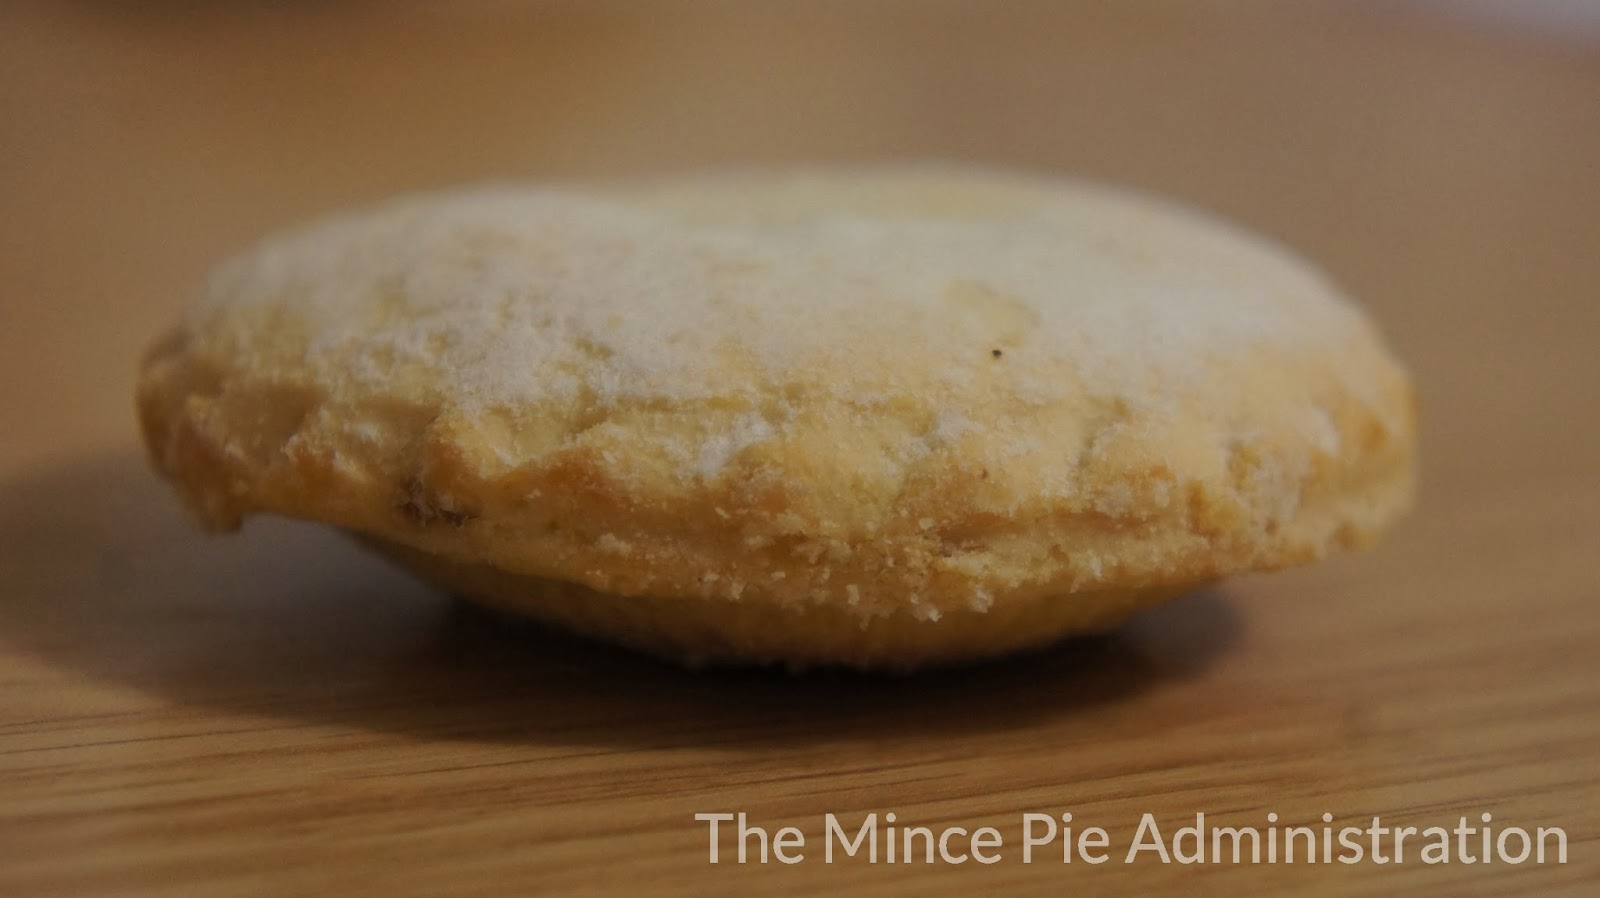 The Mince Pie Administration: Udi's Gluten Free - Mince Pies